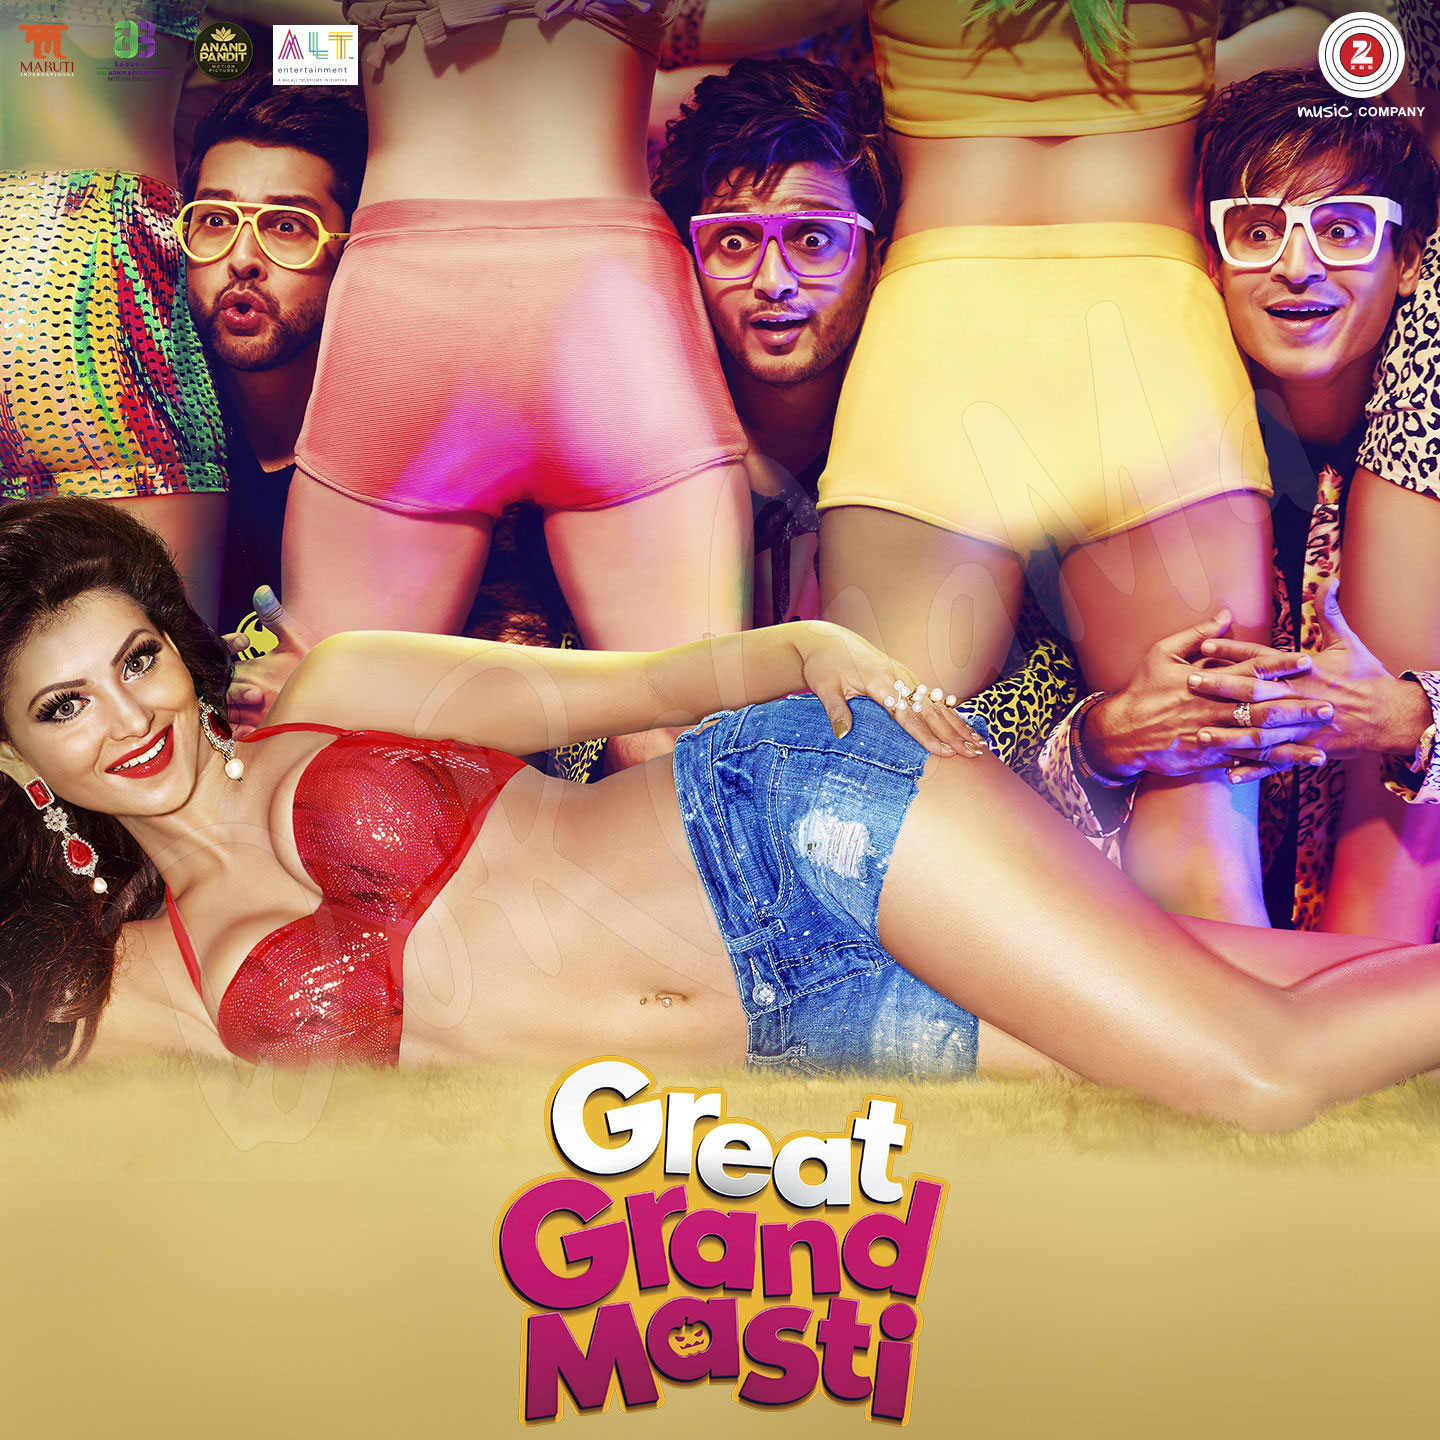 Great Grand Masti (2016) Original CD FRont Cover Poster wallpaper HD